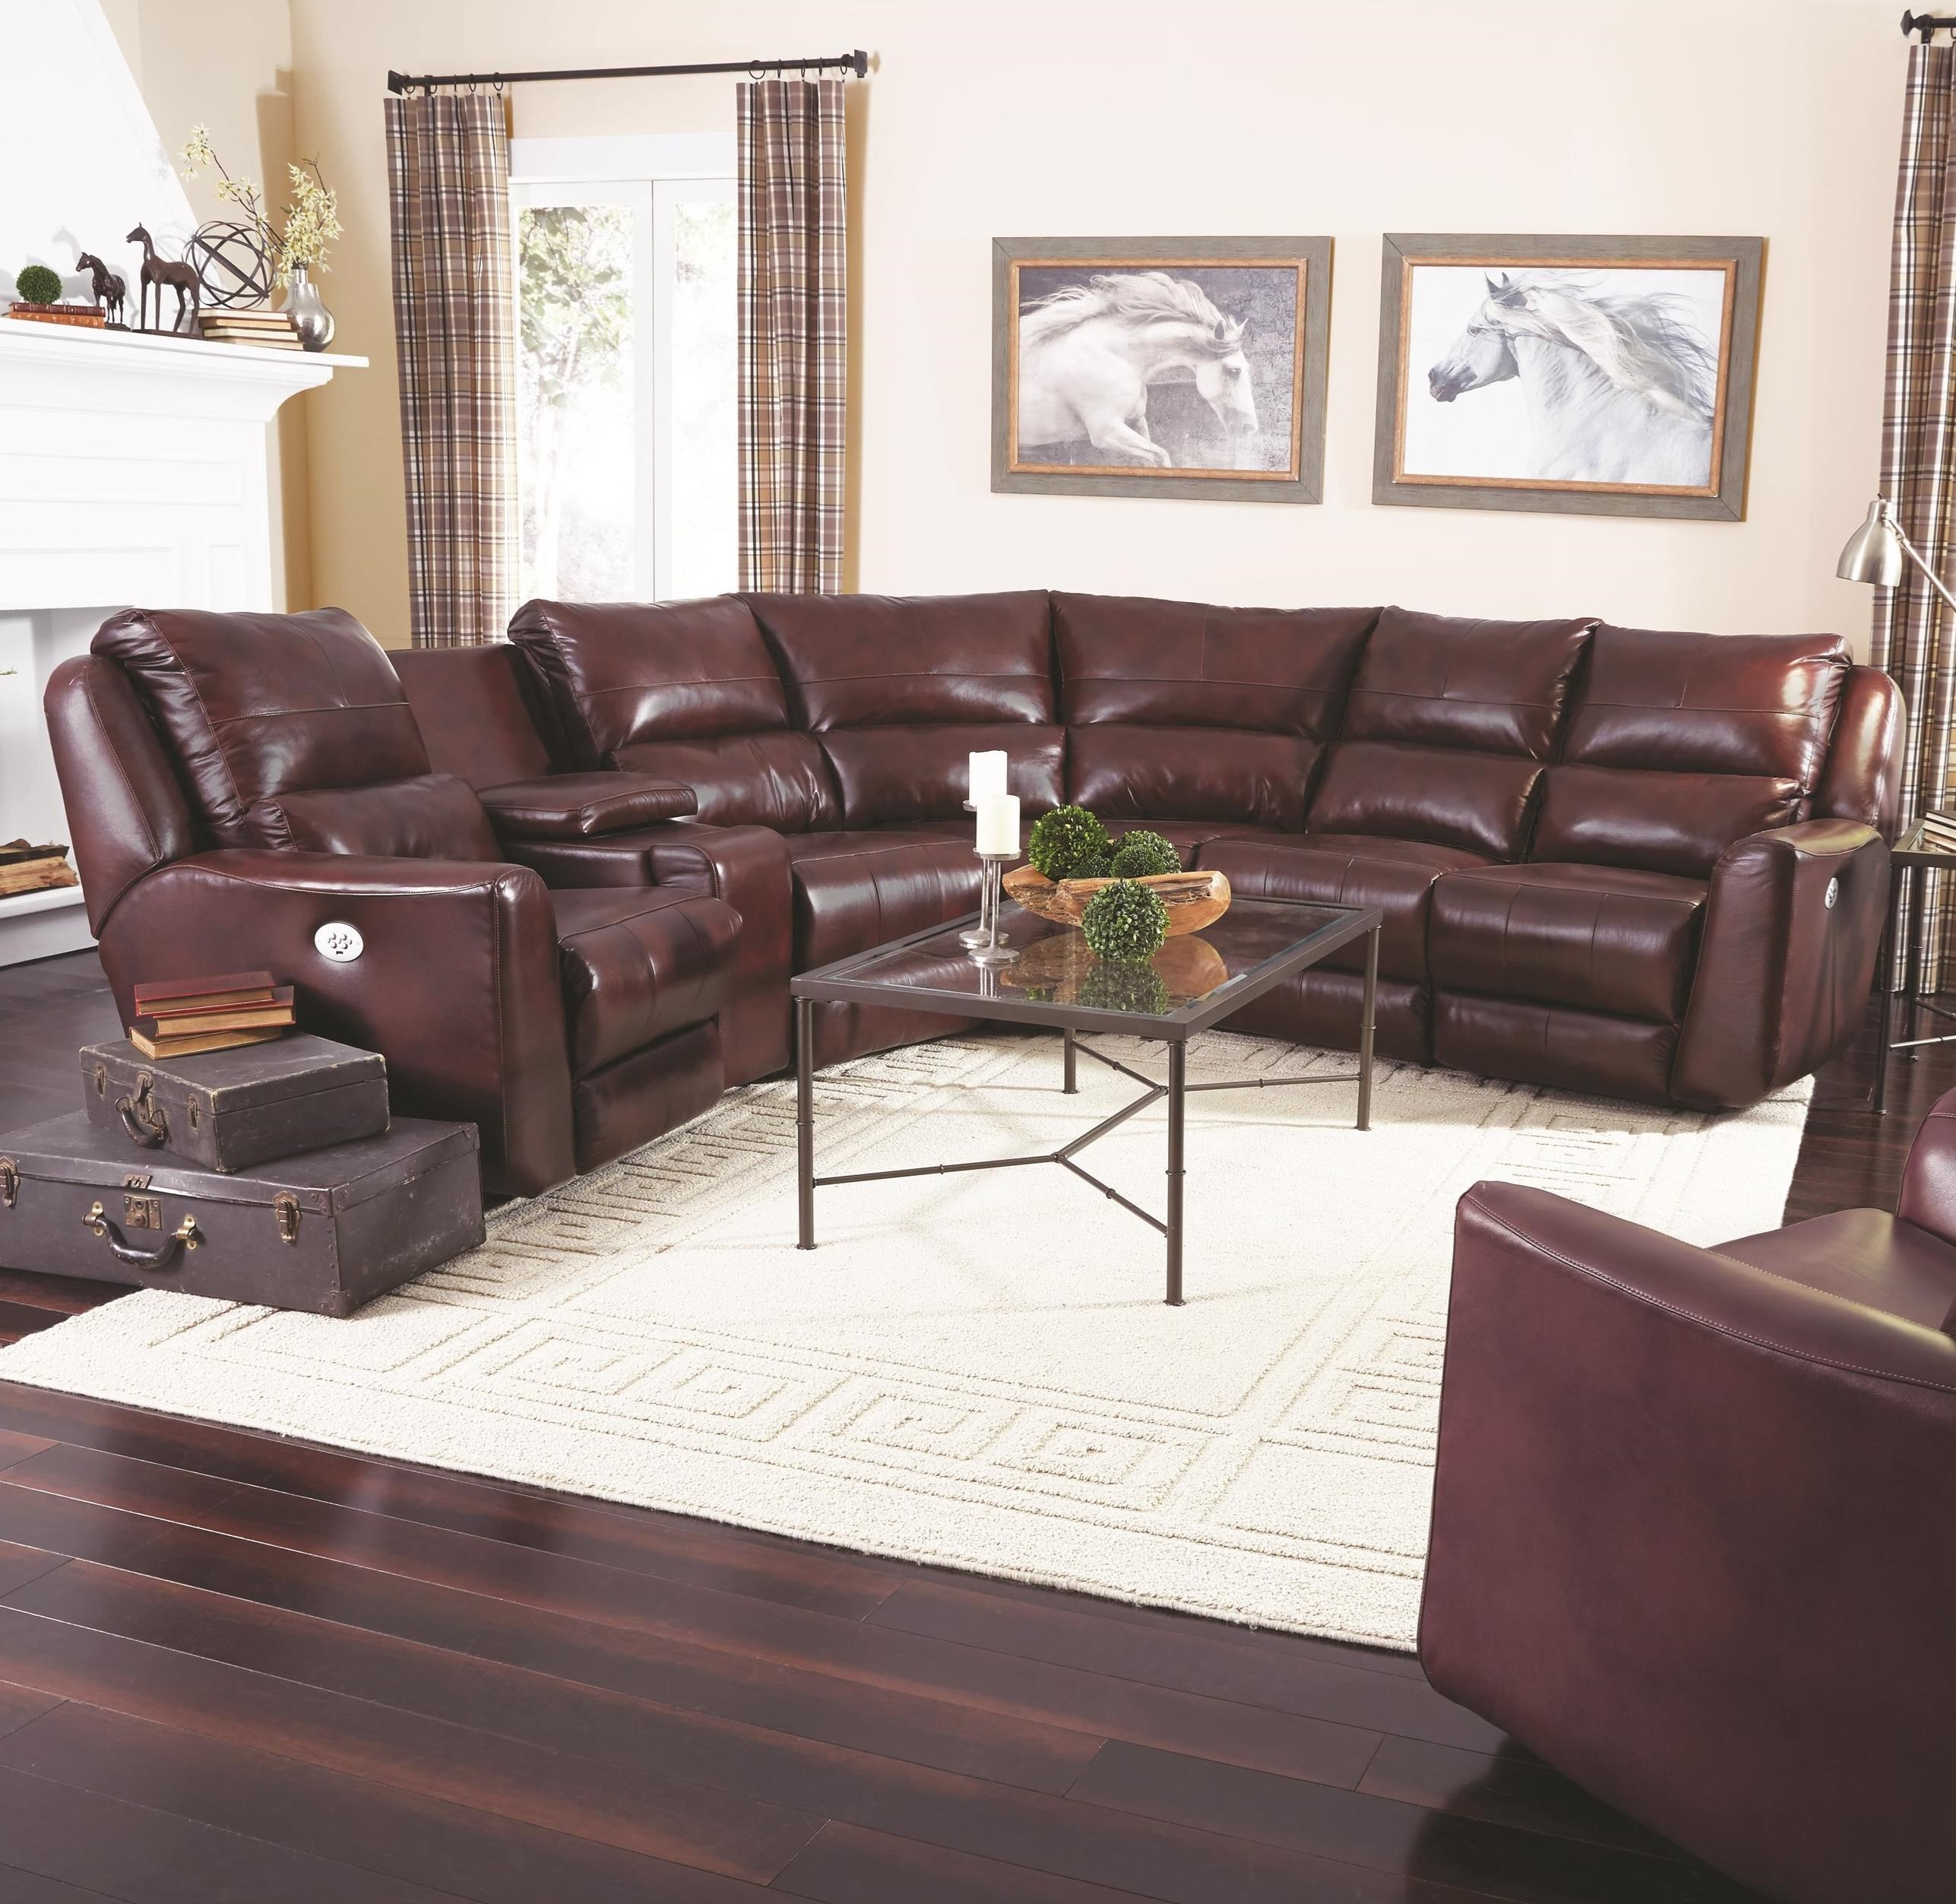 Reclining Sectional Sofa with 5 Seats no chaise by Southern